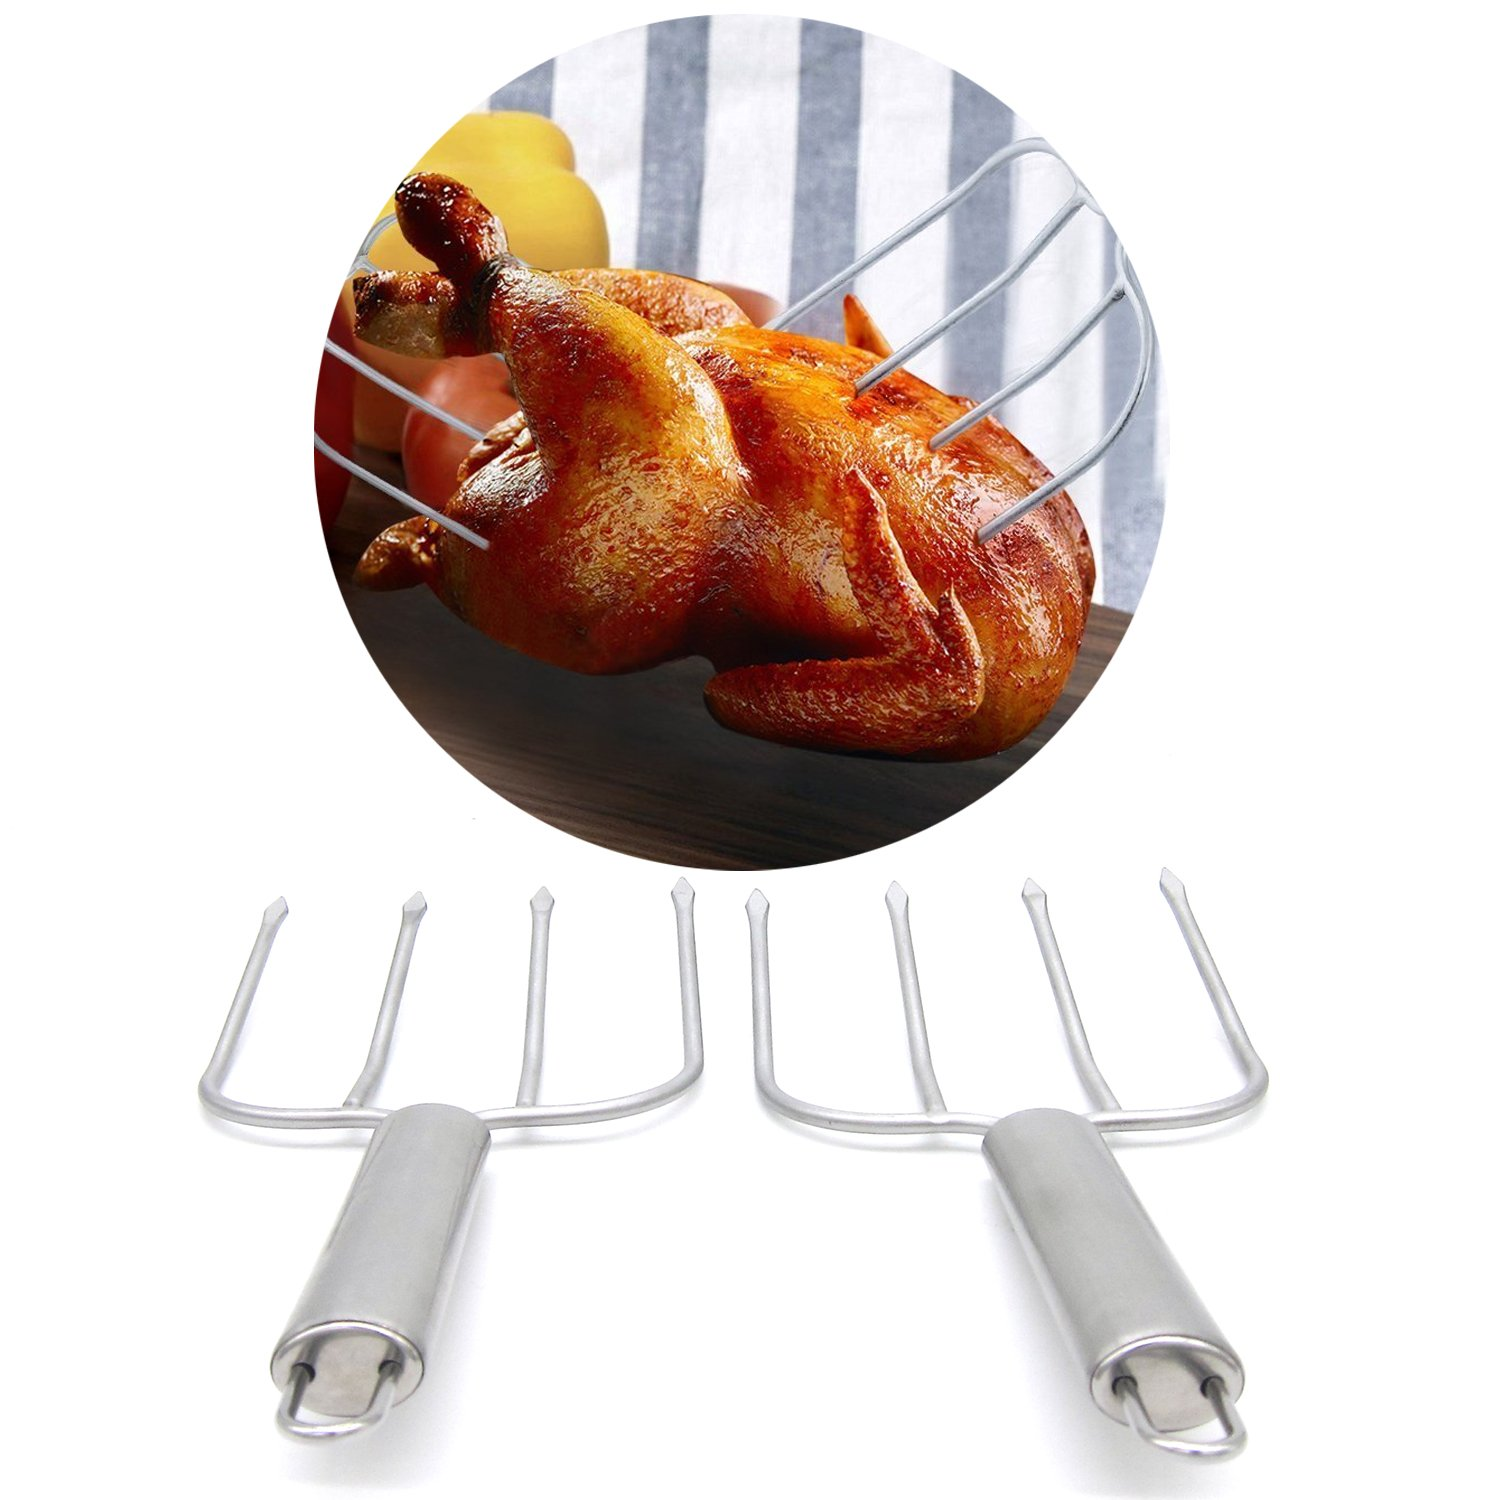 Poultry Pair of Turkey Lifters Meat Chicken Roast Forks